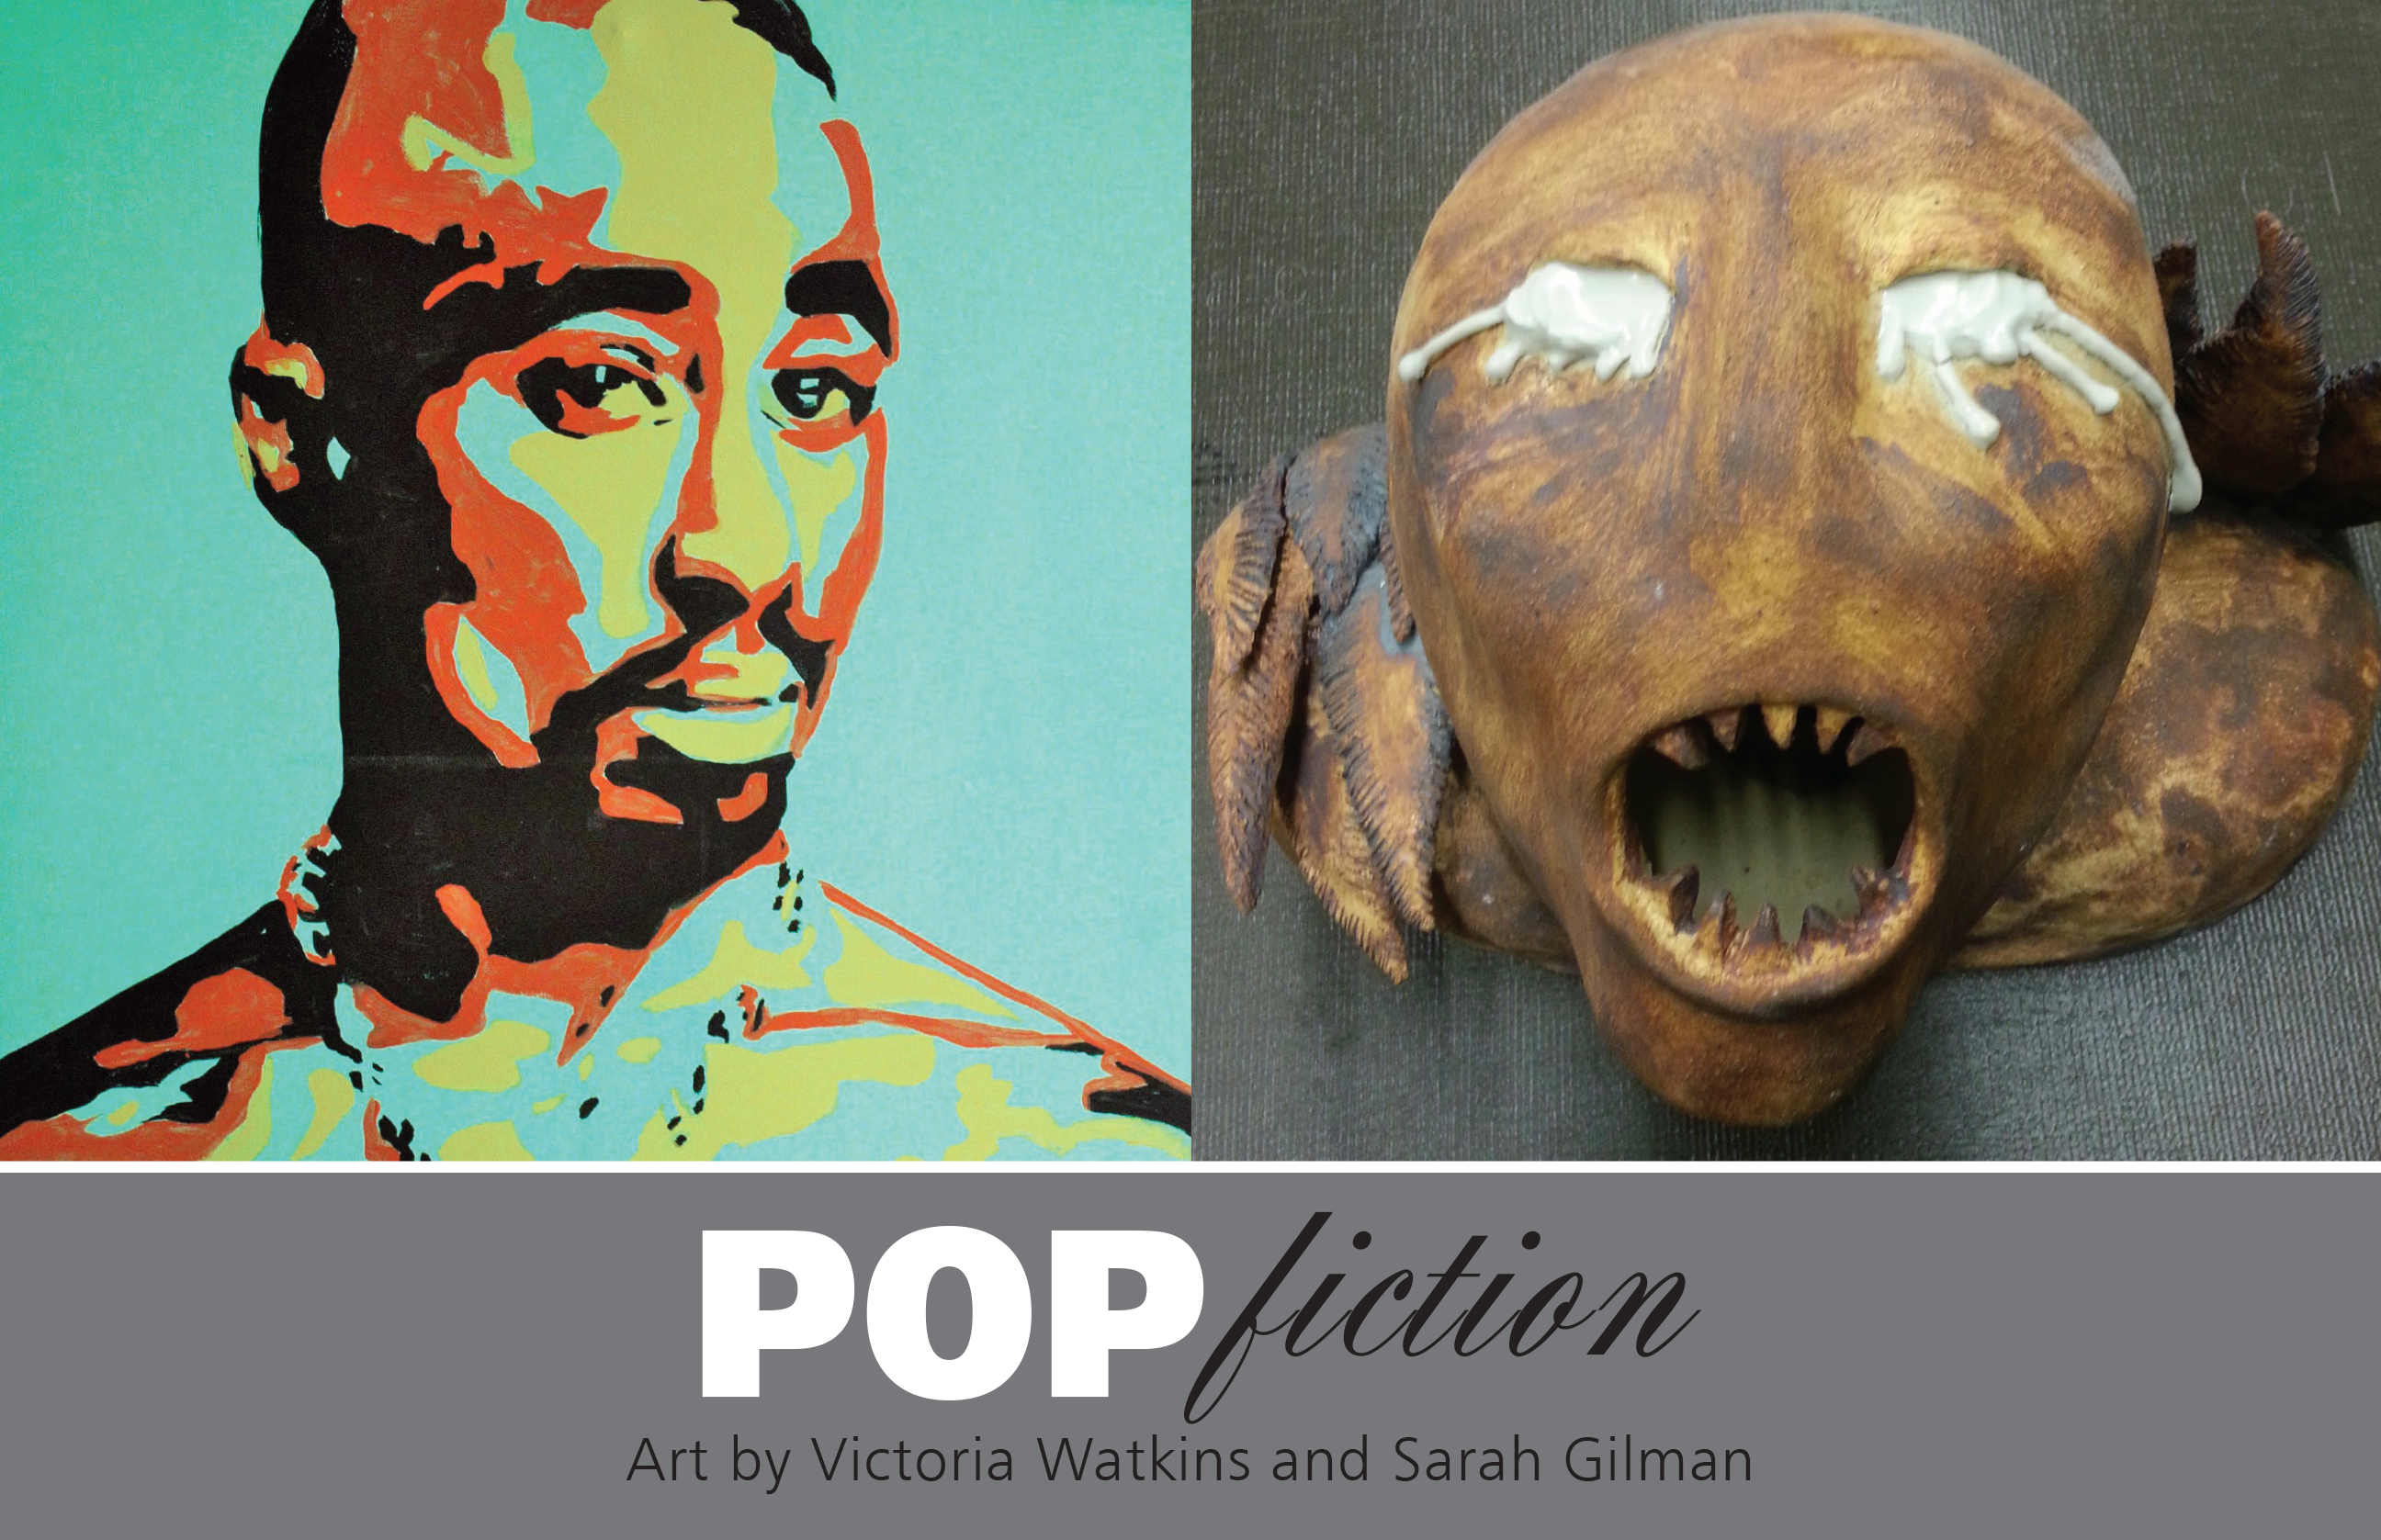 POPfiction